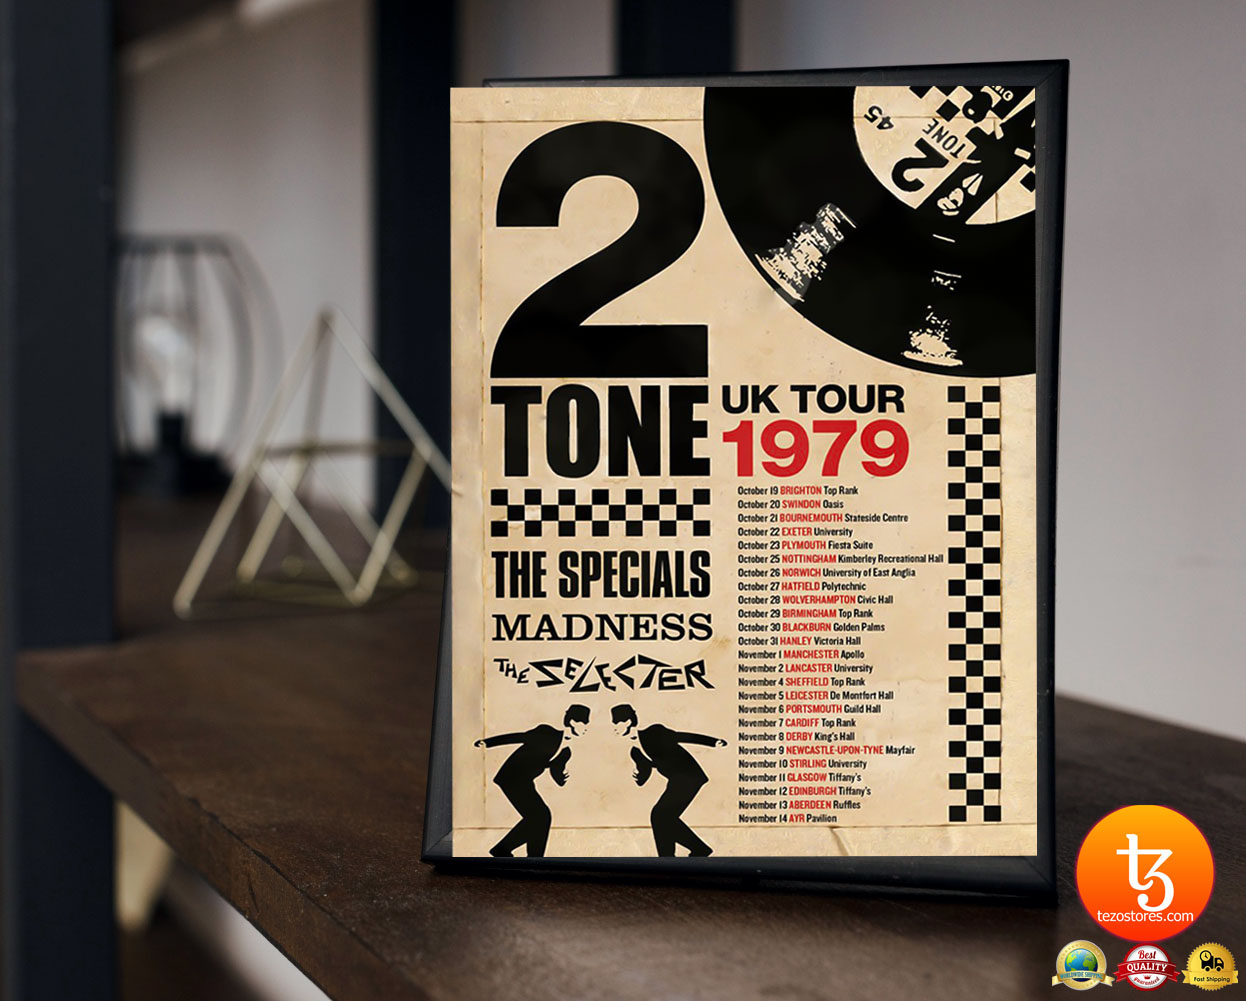 2 Tone UK tour 1979 the specials madness poster